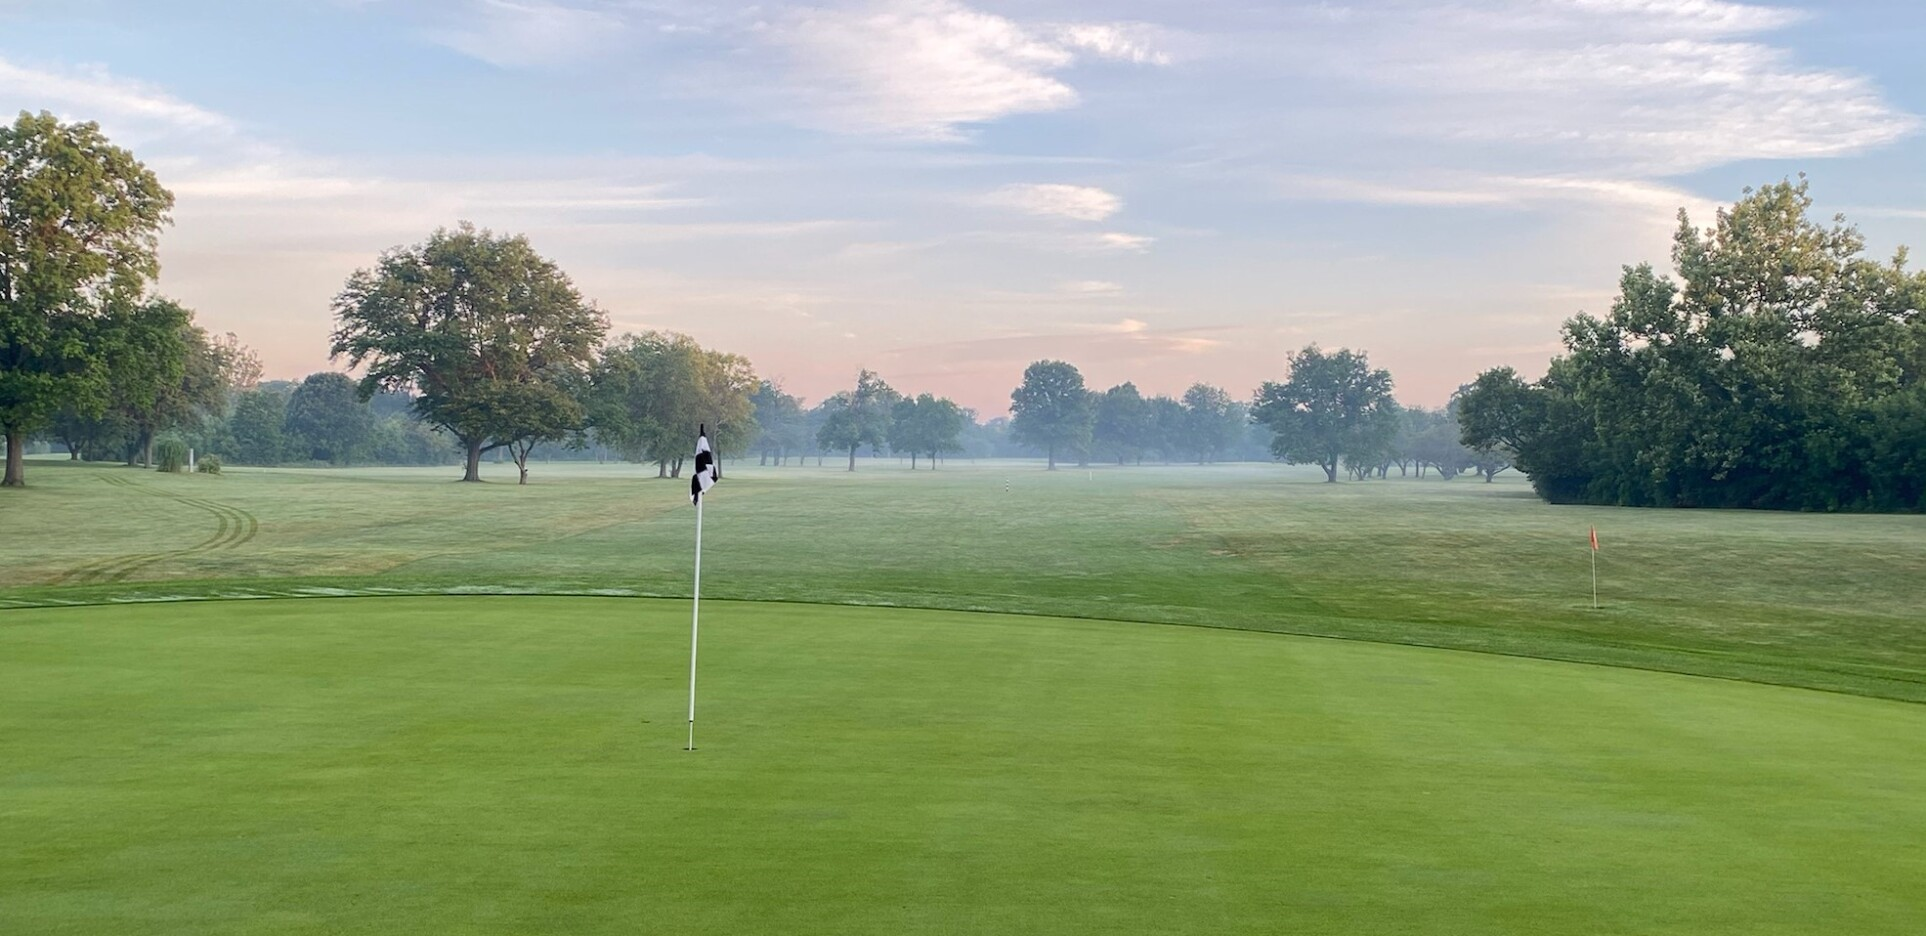 Meadowlark Golf Course located in Hinsdale, Illinois